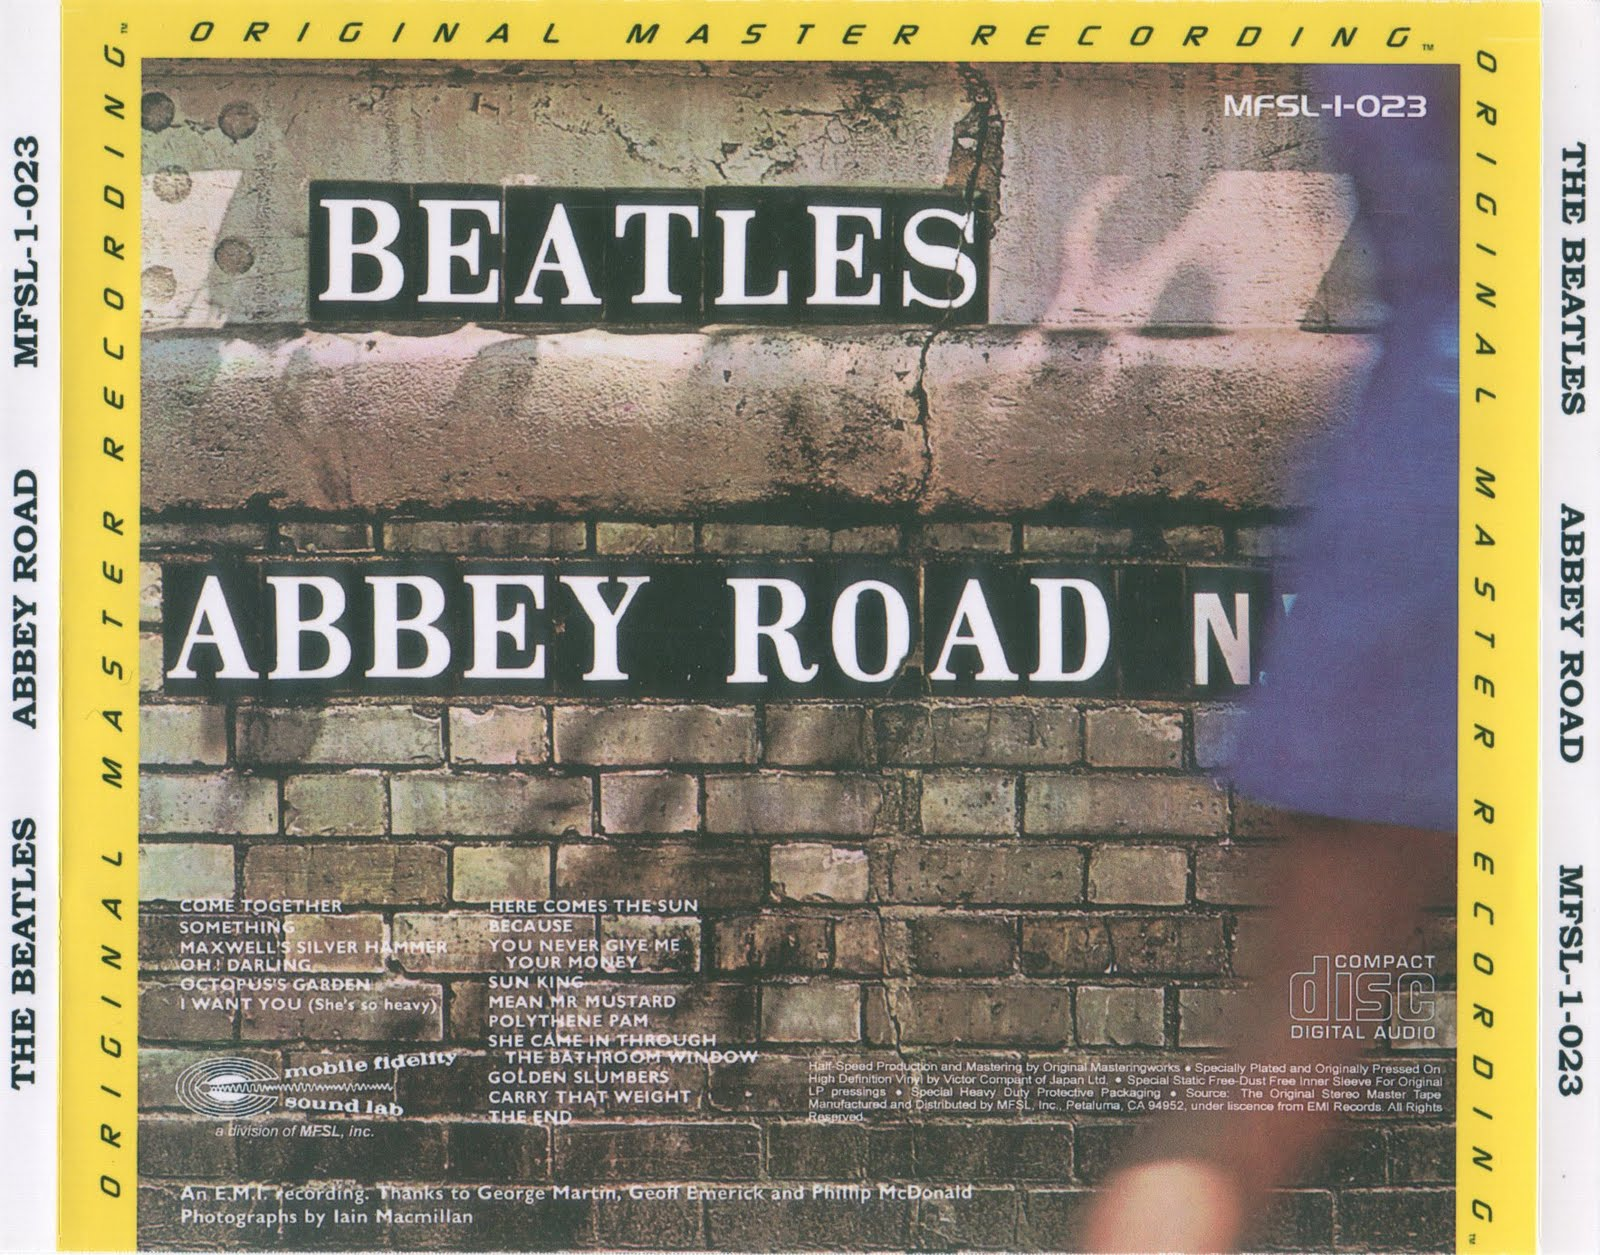 The Be・・・・: Abbey Road (UK Stereo LP - MFSL) - The Beatles